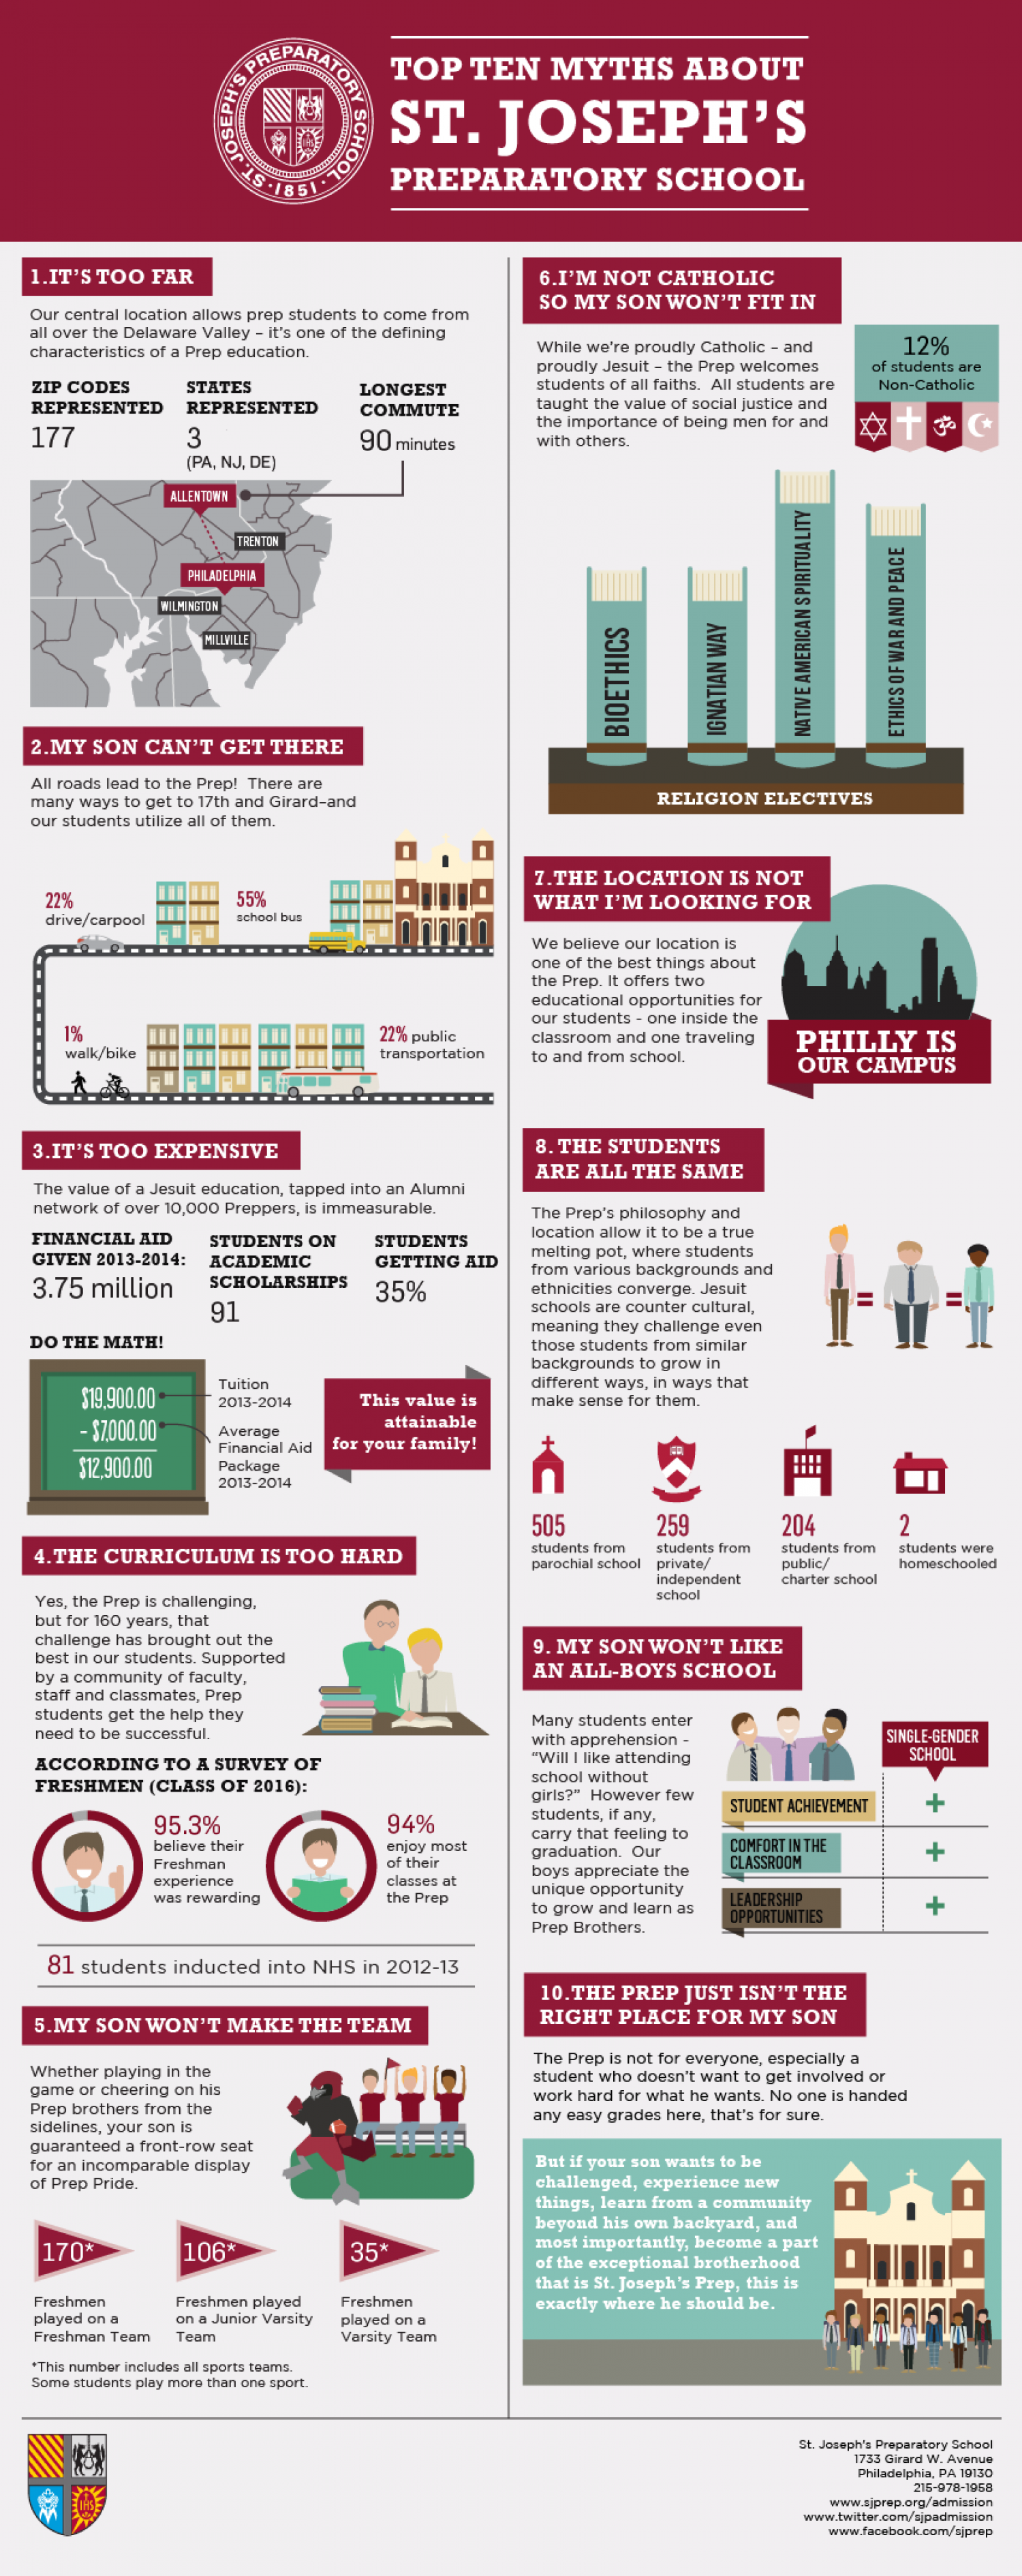 Top Ten Myths About St. Joseph's Preparatory School Infographic